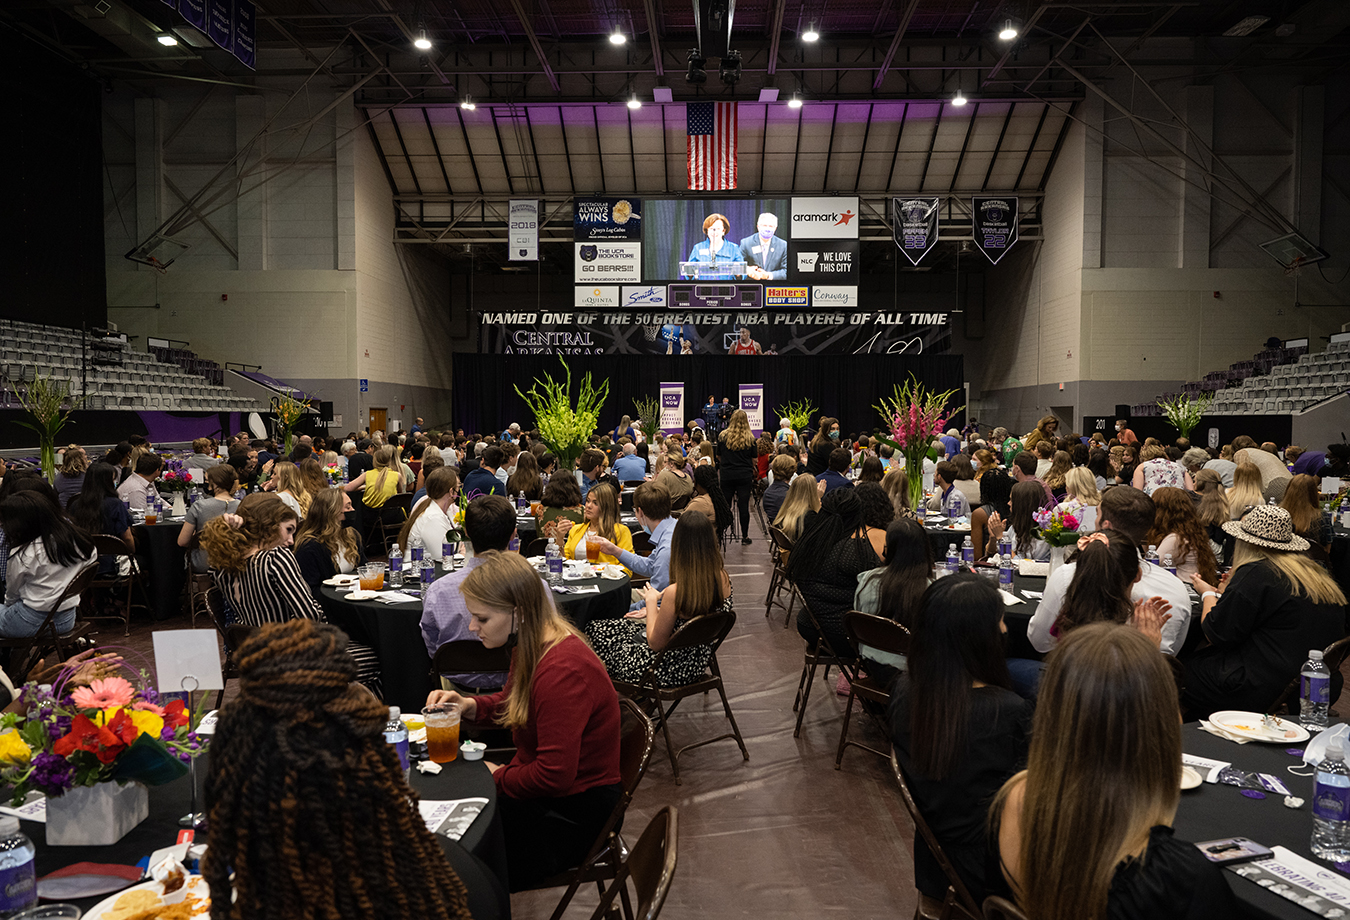 Students and donors sit at tables